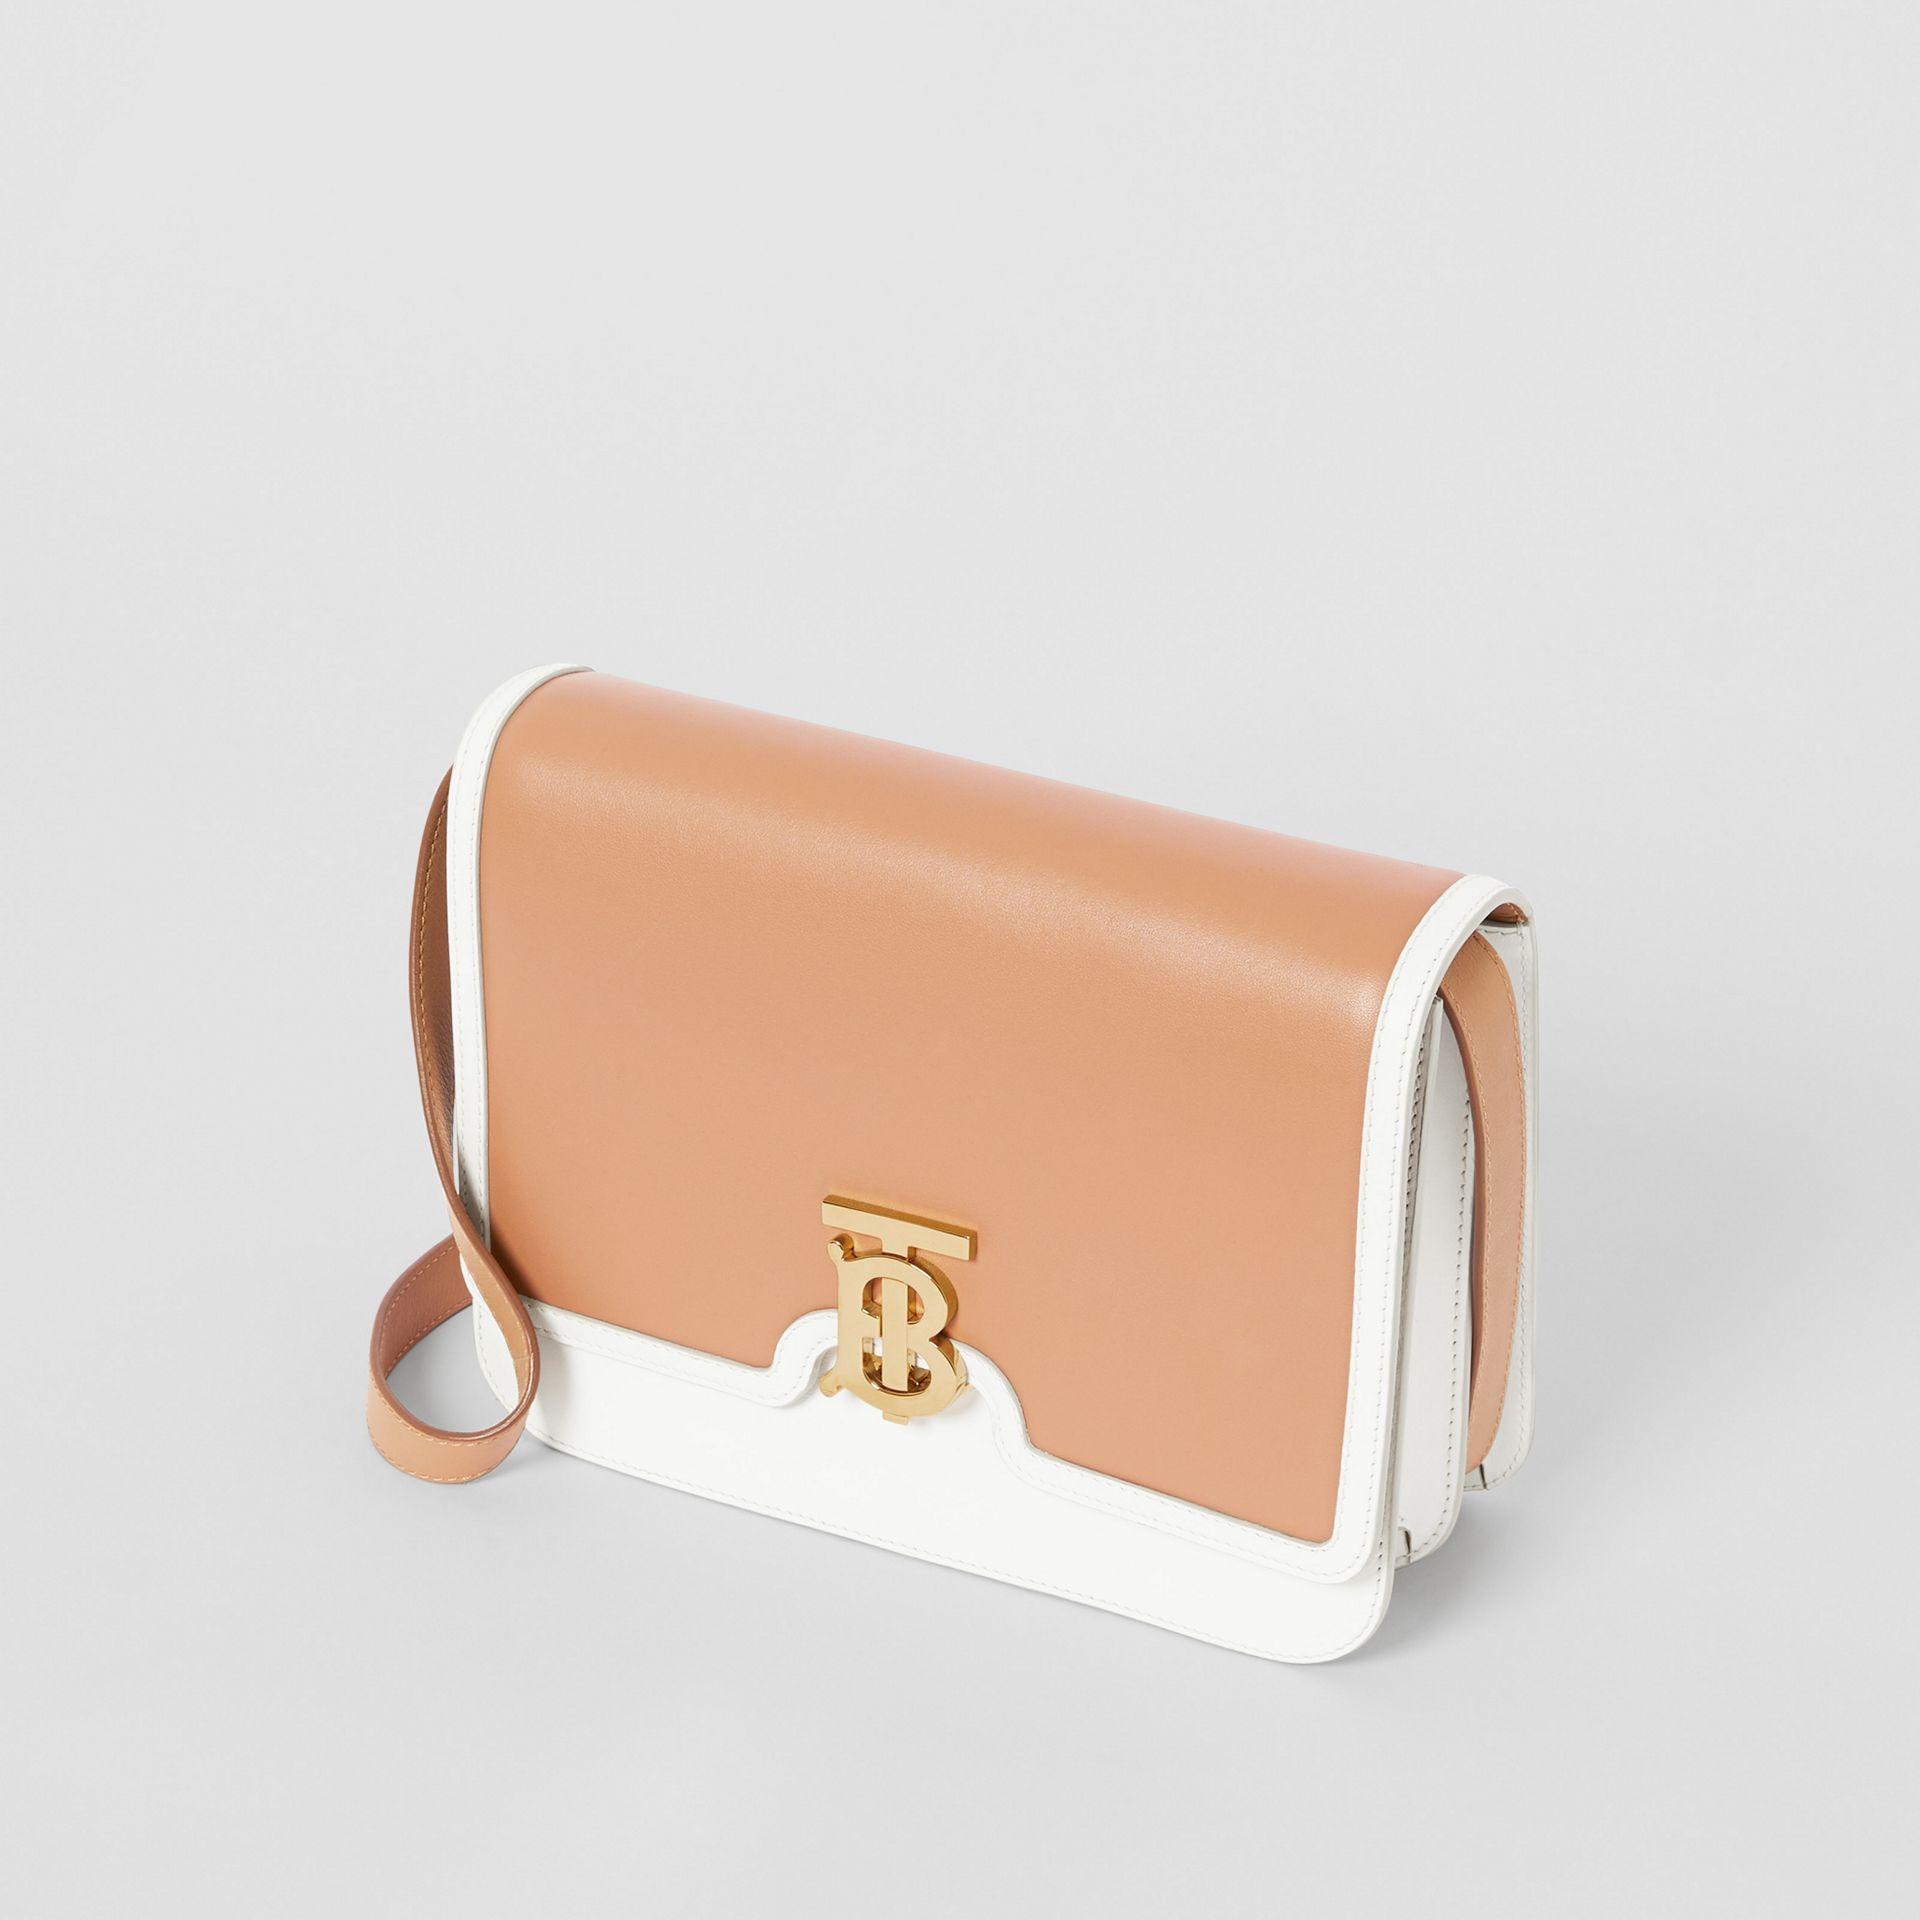 Medium Two-tone Leather TB Bag in Chalk White/light Camel - Women | Burberry - gallery image 3